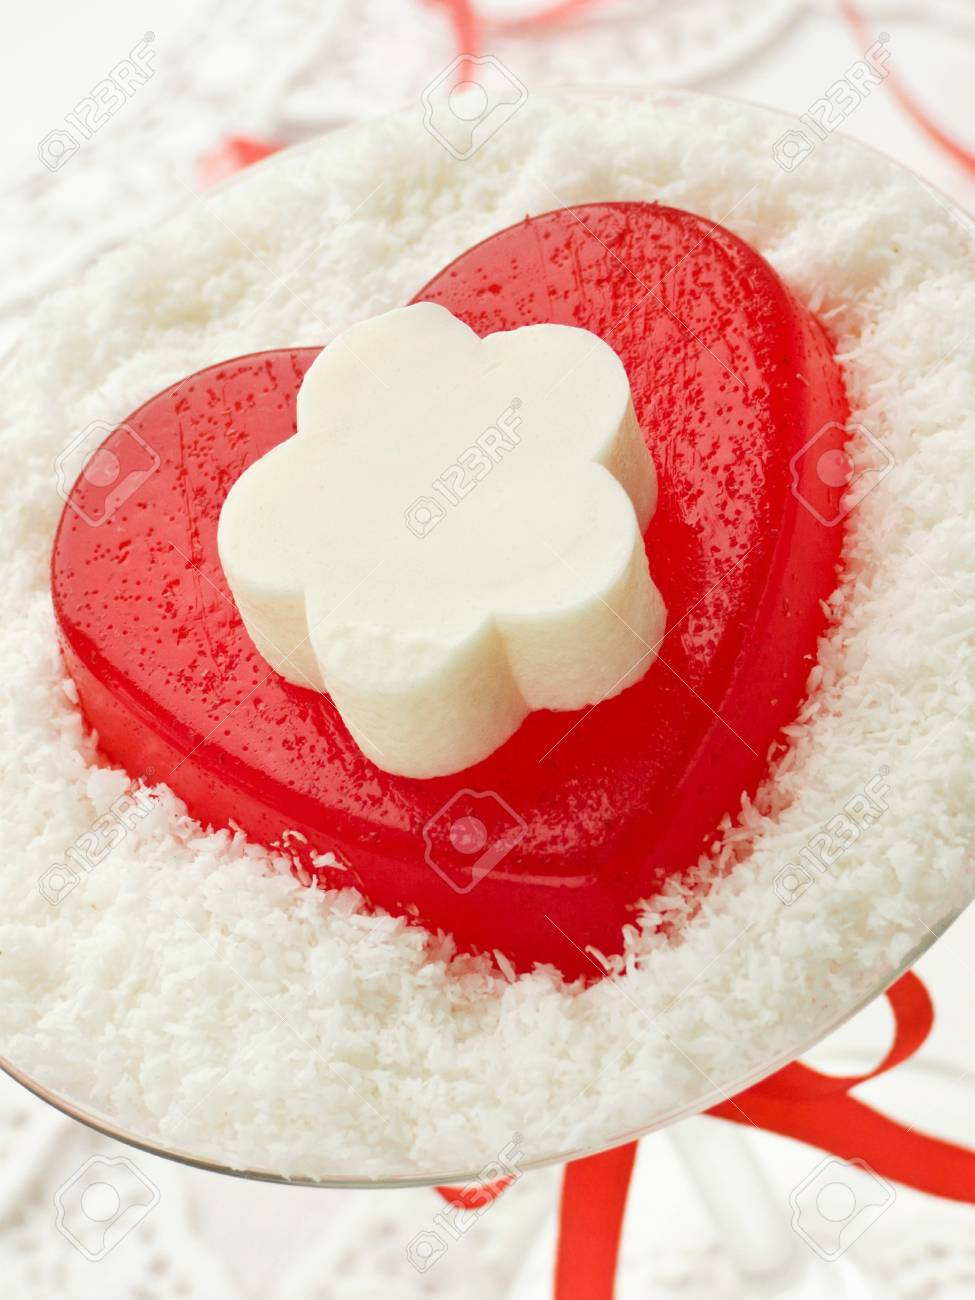 Heart-shaped dessert for Valentine's Day. Shallow dof. Stock Photo - 8668474